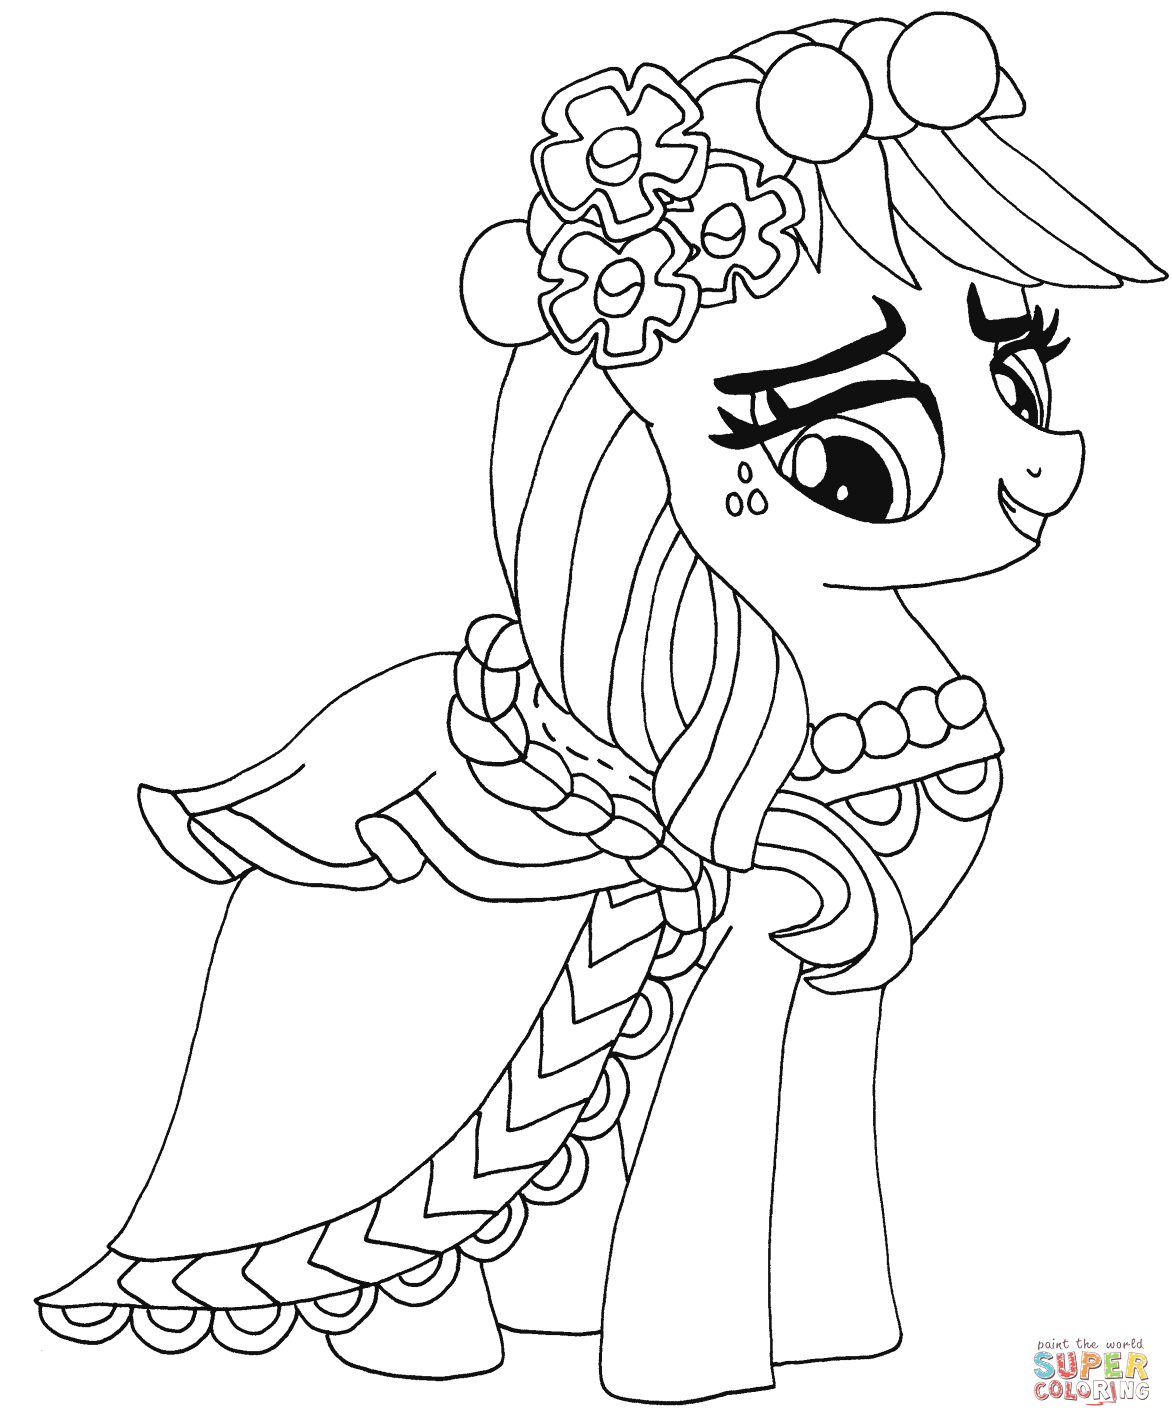 My Little Pony Applejack from My Little Pony Coloring Page